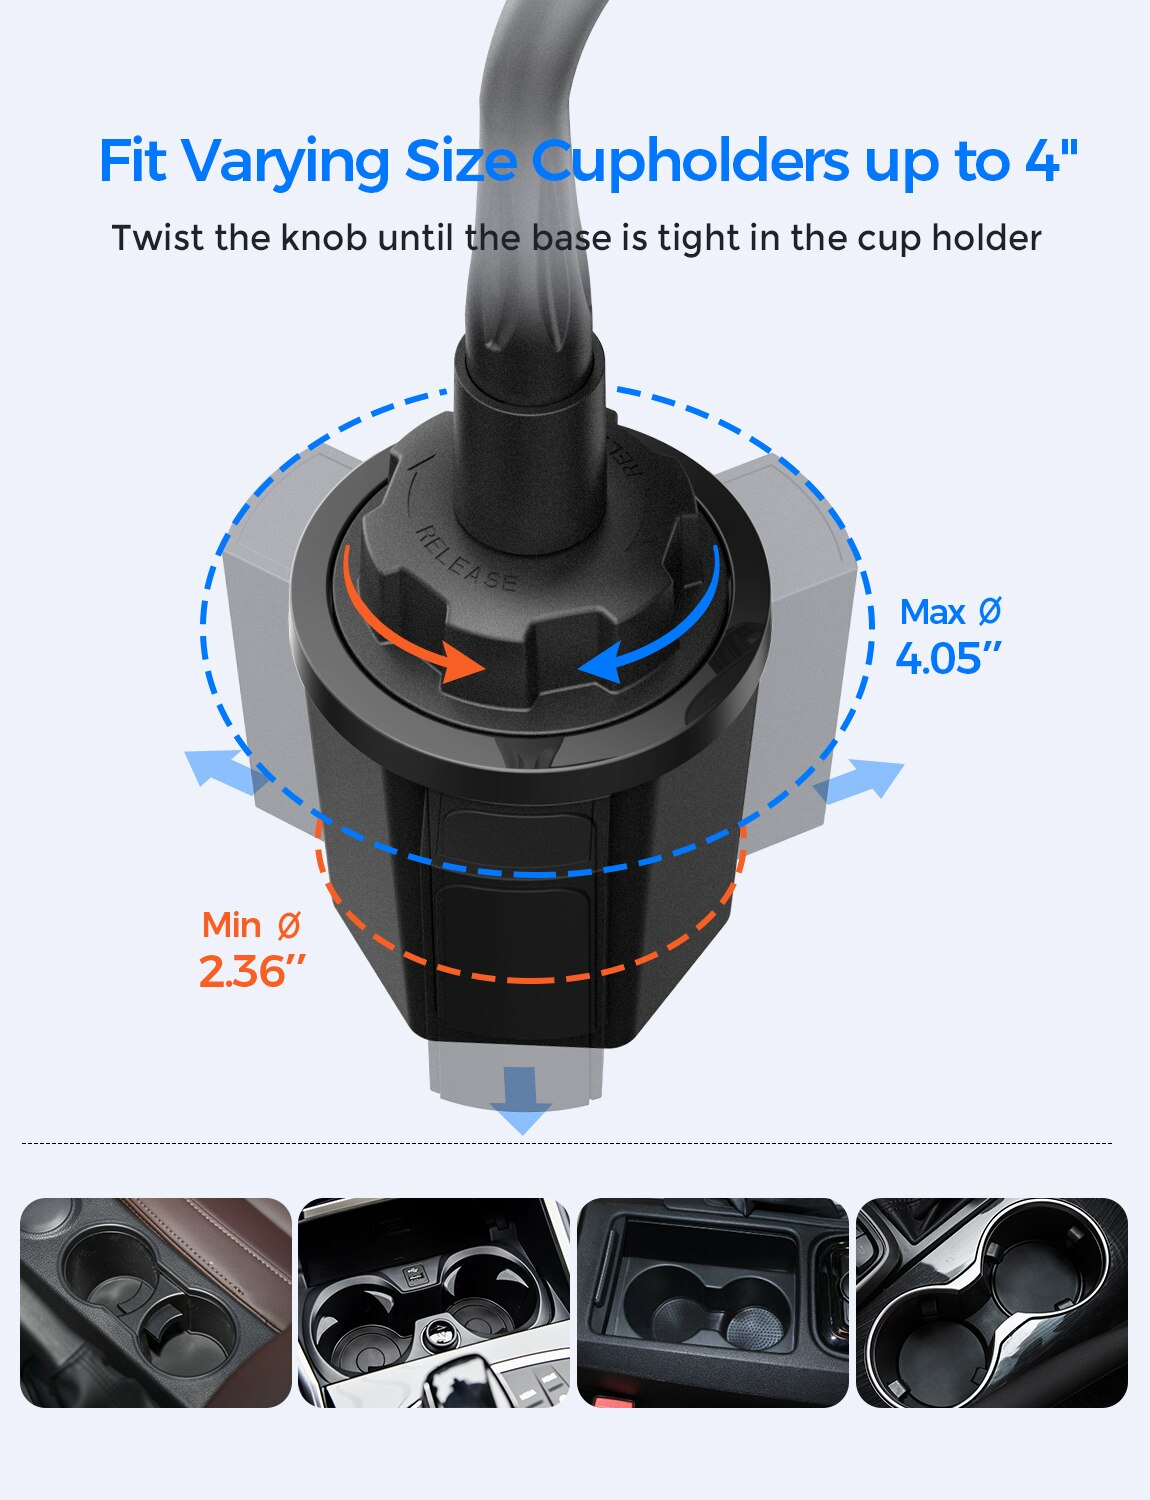 Hef9b171543cb43e8a2f653f2149bc7a1e - Mpow CA136 Car Phone Holder 360 Degree Flexible Long Arm and Adjustable Clamp Universal Phone Cradle Mount for For iPhone 12 XS